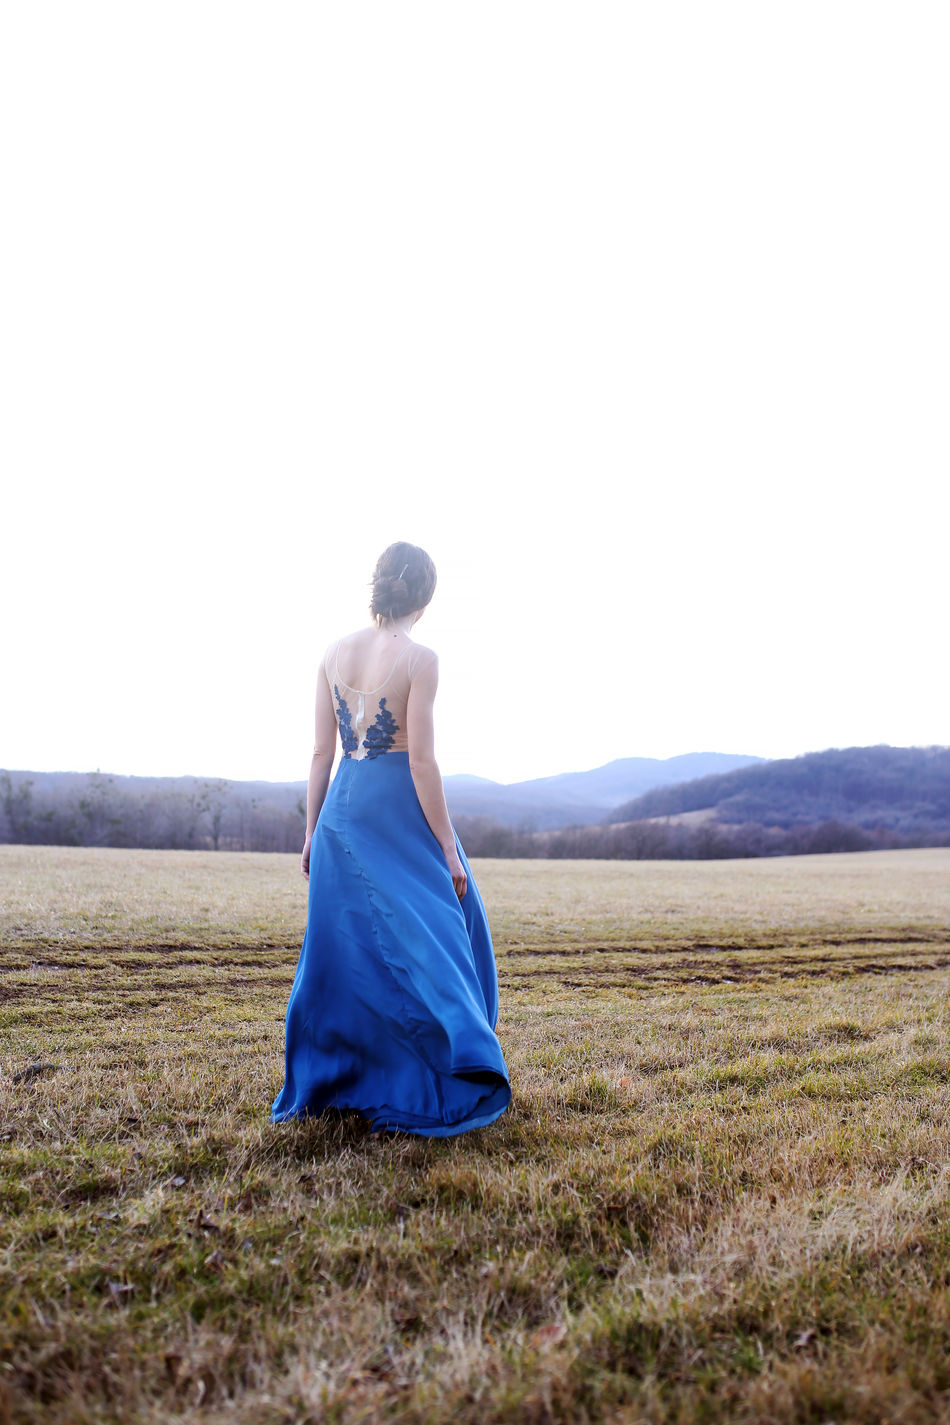 Beauty Beauty In Nature Blue Clear Sky Dress Girl Grass Haute Couture Landscape Nature One Person Outdoors Sky Woman Women